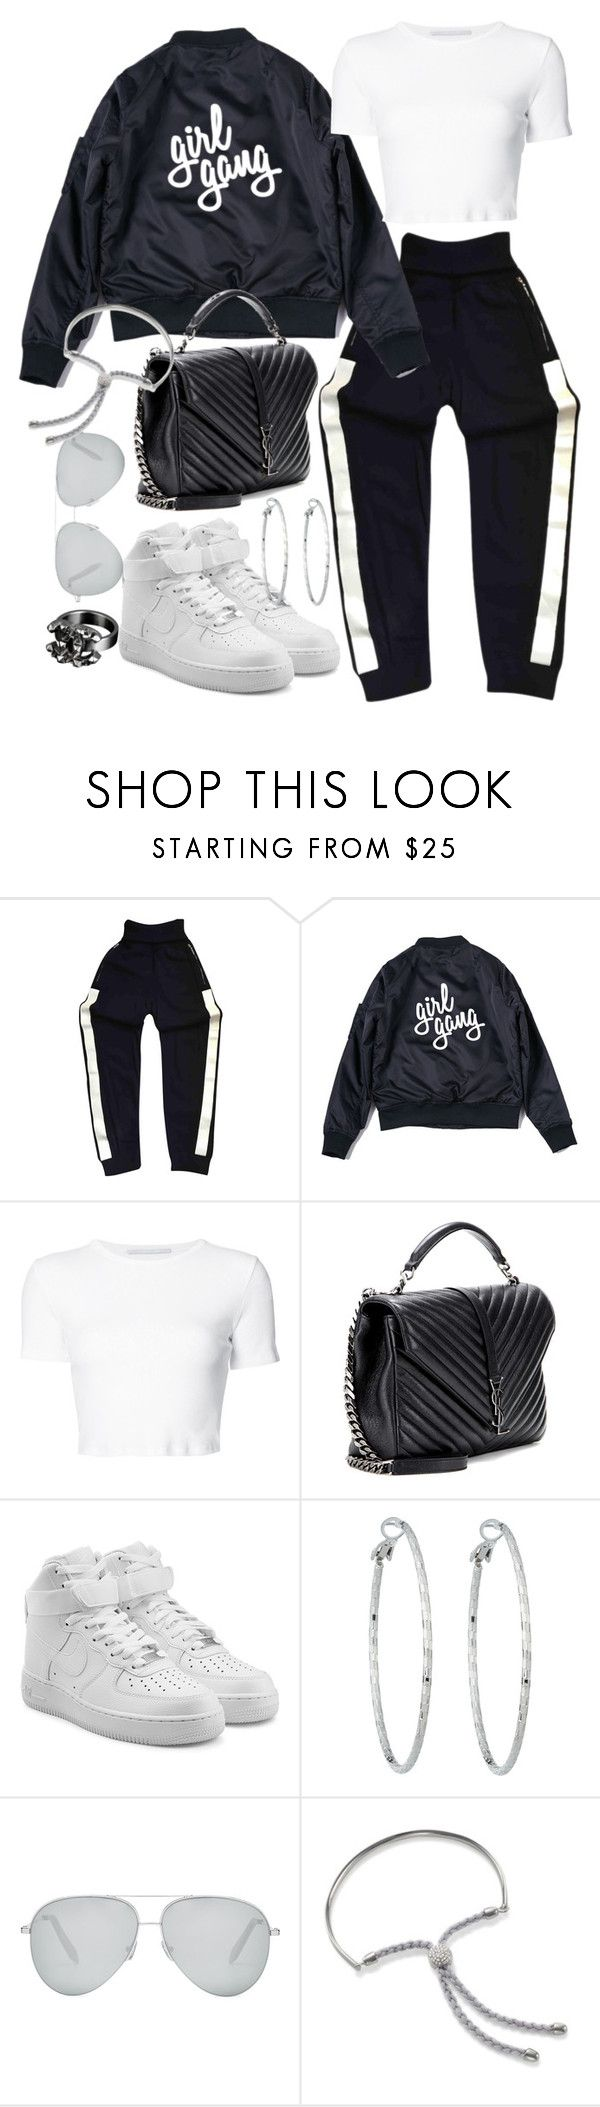 """""""Untitled #20931"""" by florencia95 ❤ liked on Polyvore featuring Chanel, Rosetta Getty, Yves Saint Laurent, NIKE, Lydell NYC, Victoria Beckham and Monica Vinader"""